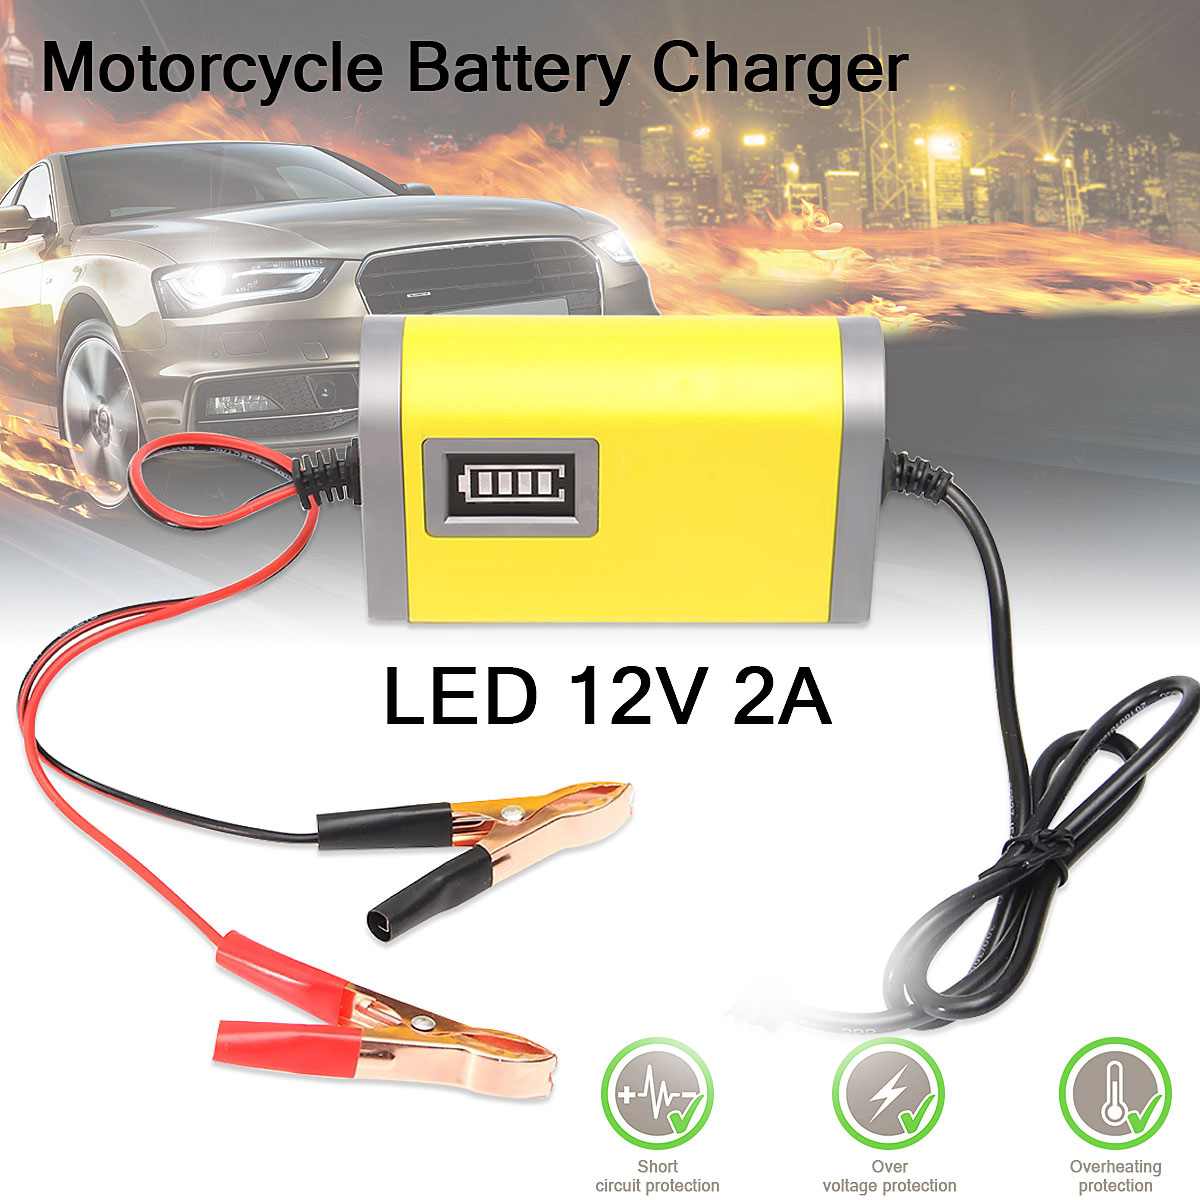 Smart Automatic 12V 2A <font><b>Car</b></font> Motorcycle <font><b>Battery</b></font> <font><b>Charger</b></font> Maintainer <font><b>Trickle</b></font> for <font><b>Car</b></font> Motorcycle image